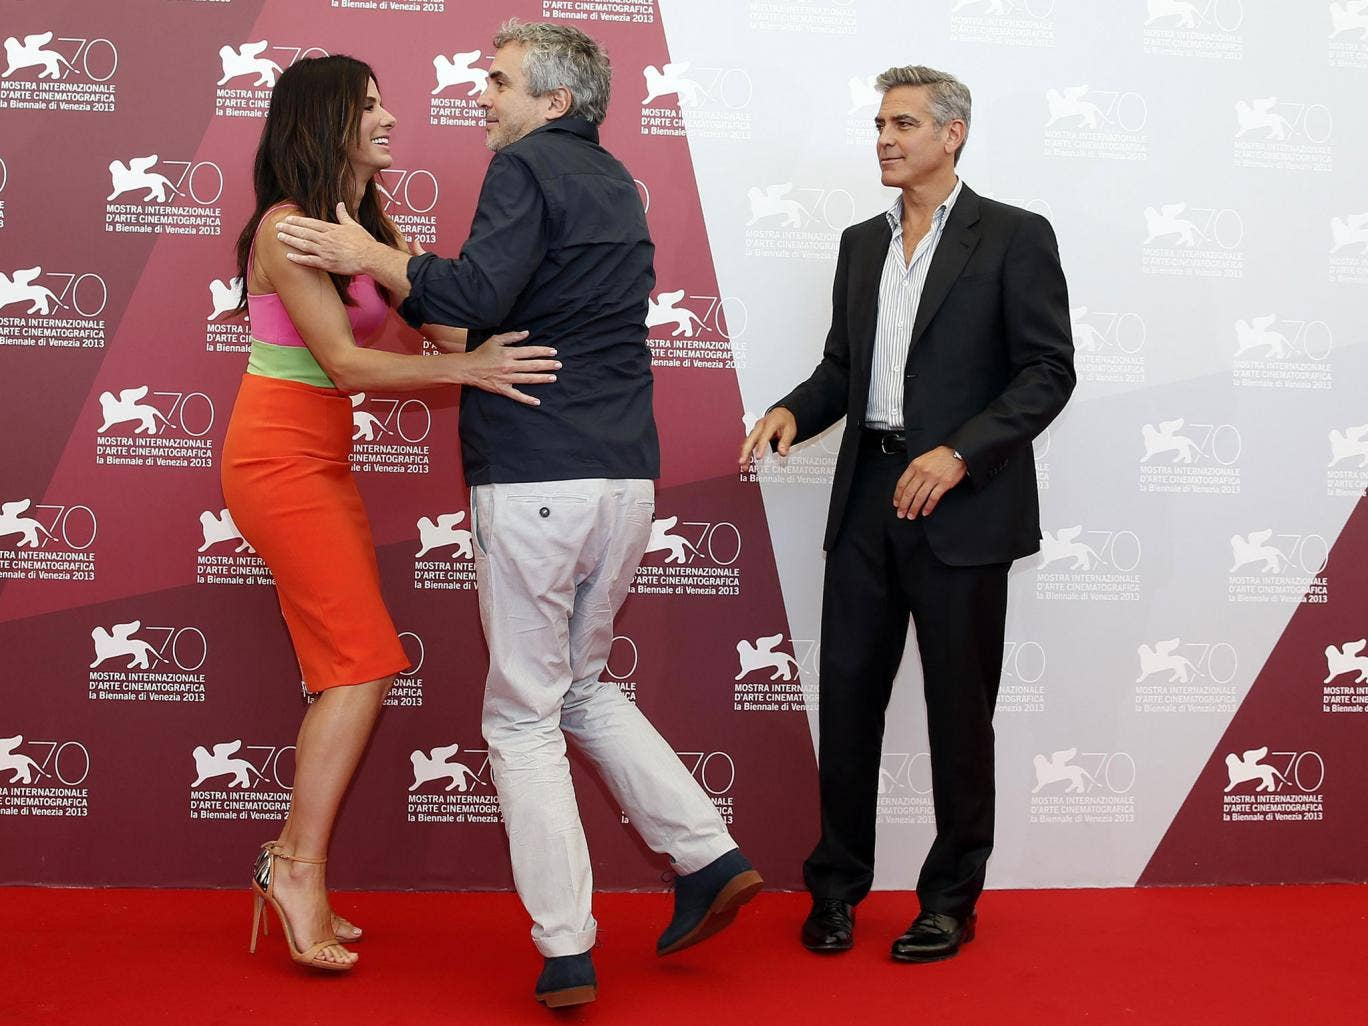 George Clooney, Sandra Bullock and director Alfonso Cuaron arrive at the 70th Venice Film Festival in Venice